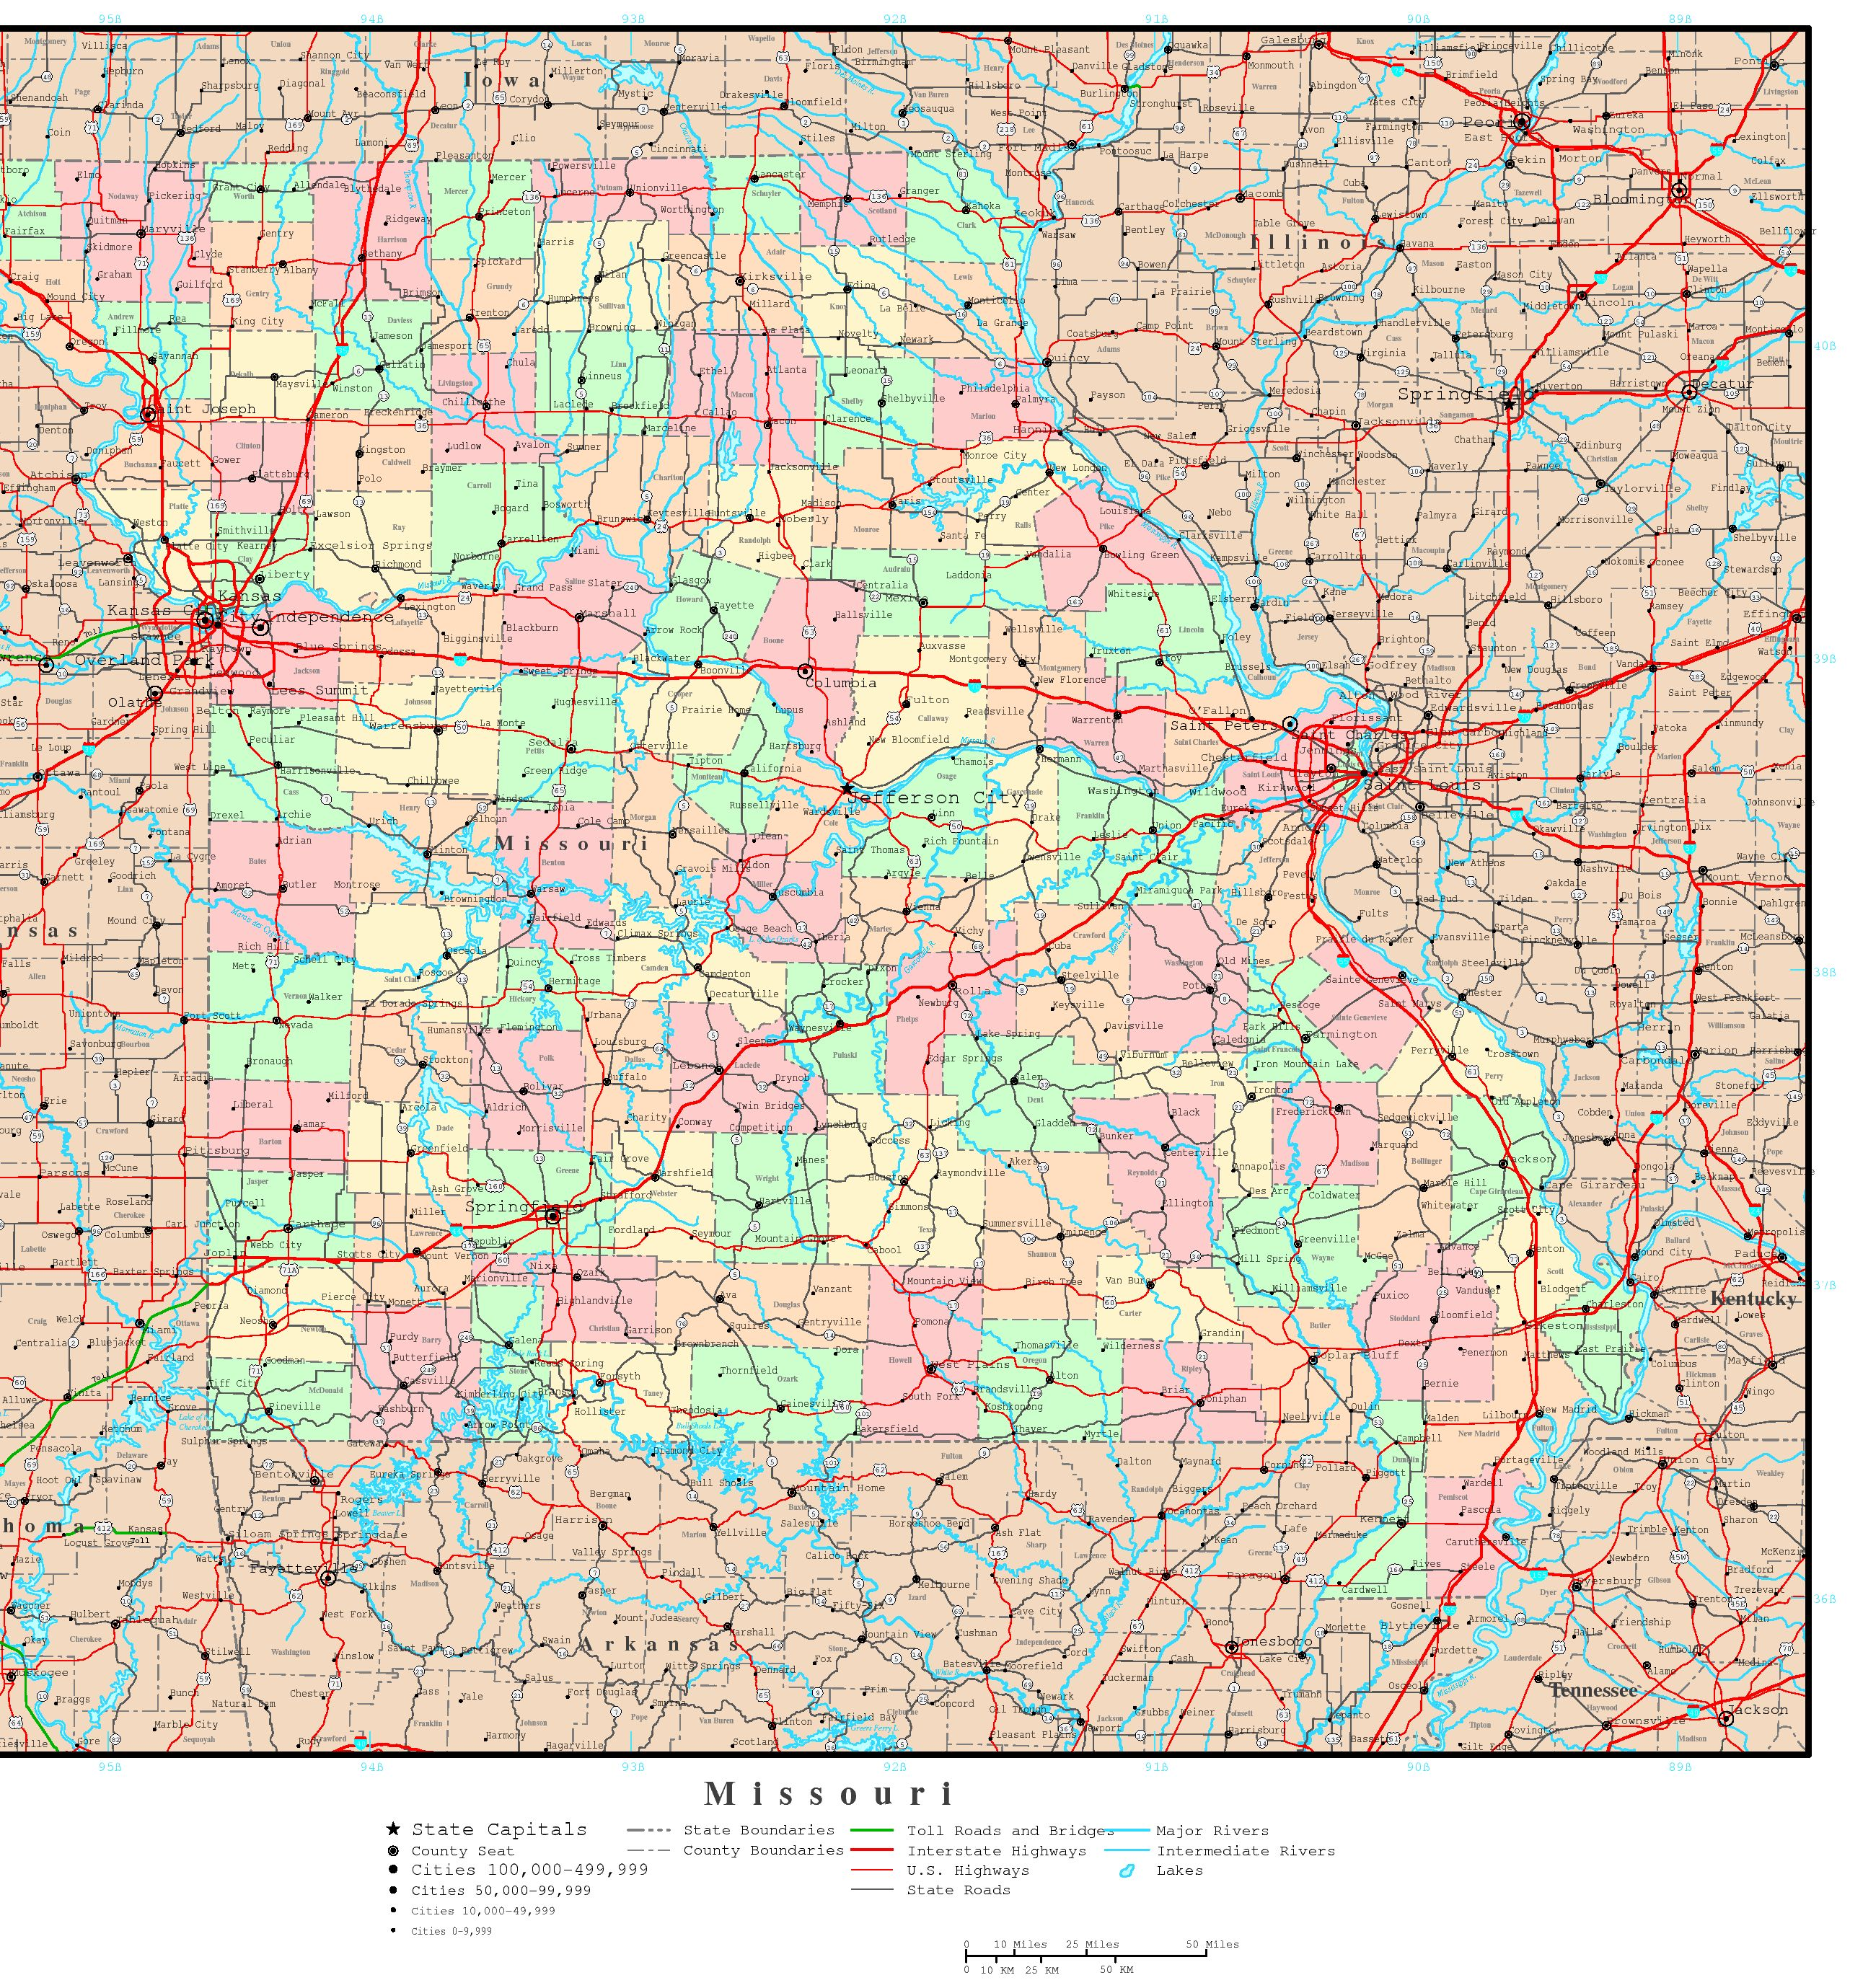 Missouri Political Map - Mossouri map